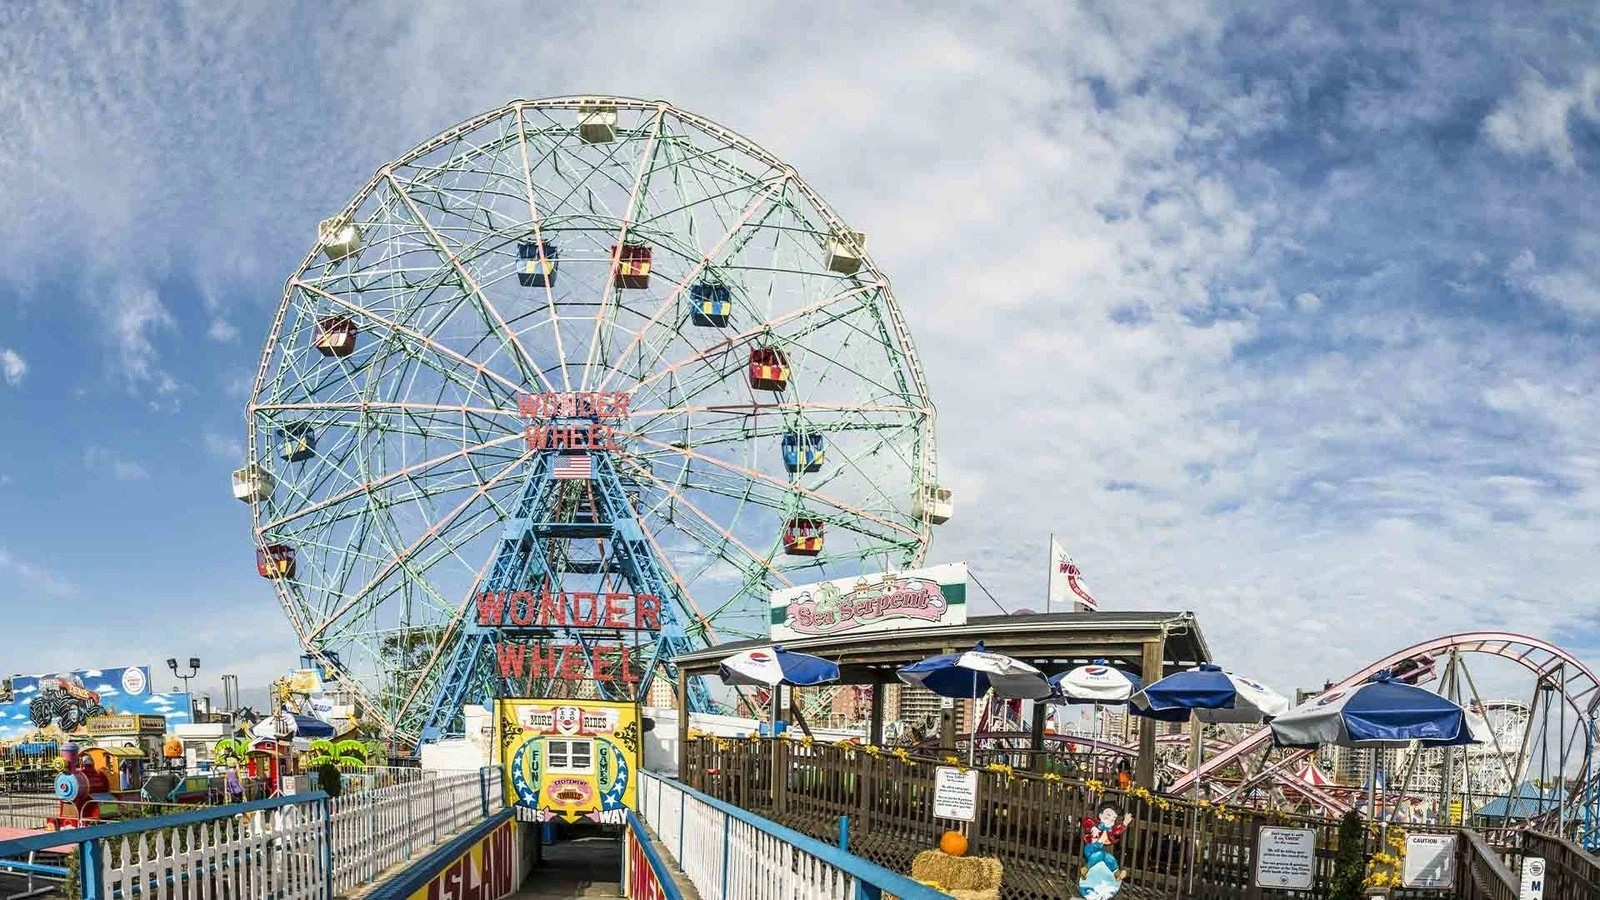 COVID NYC Update: Luna Park, Deno's Wonder Wheel in Coney Island ready to welcome back guests